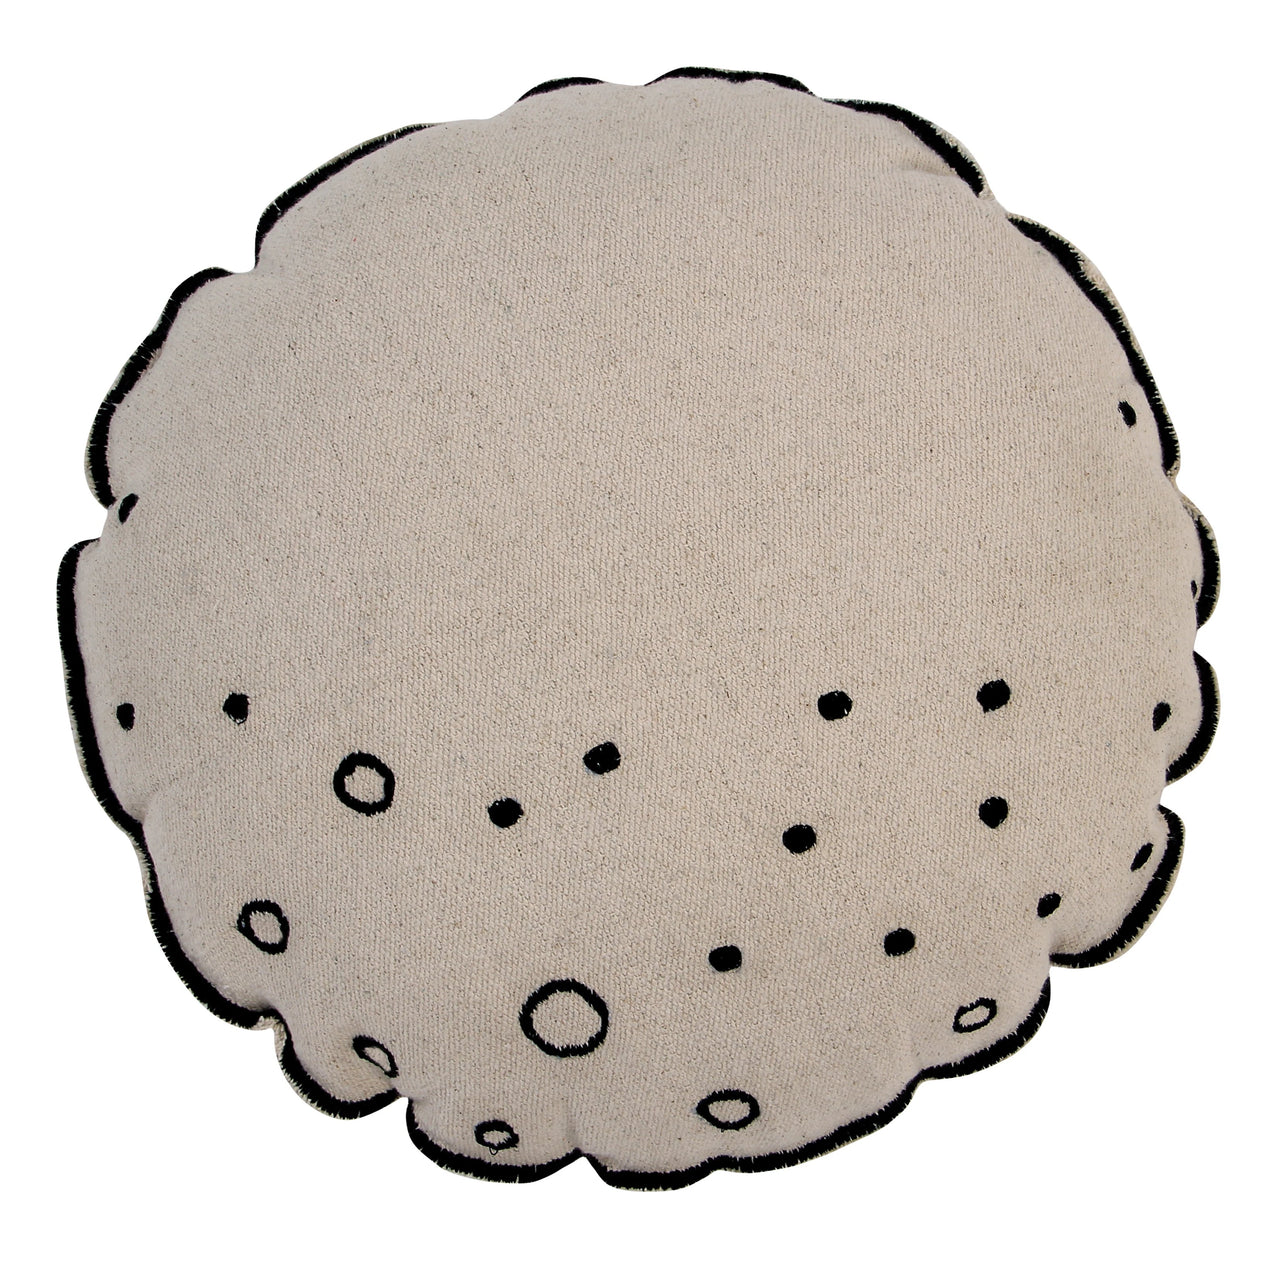 Inspired by the moon, this round cushion has an irregular border. Embroidered on the base of the cushion are circles that resemble craters on the moon.